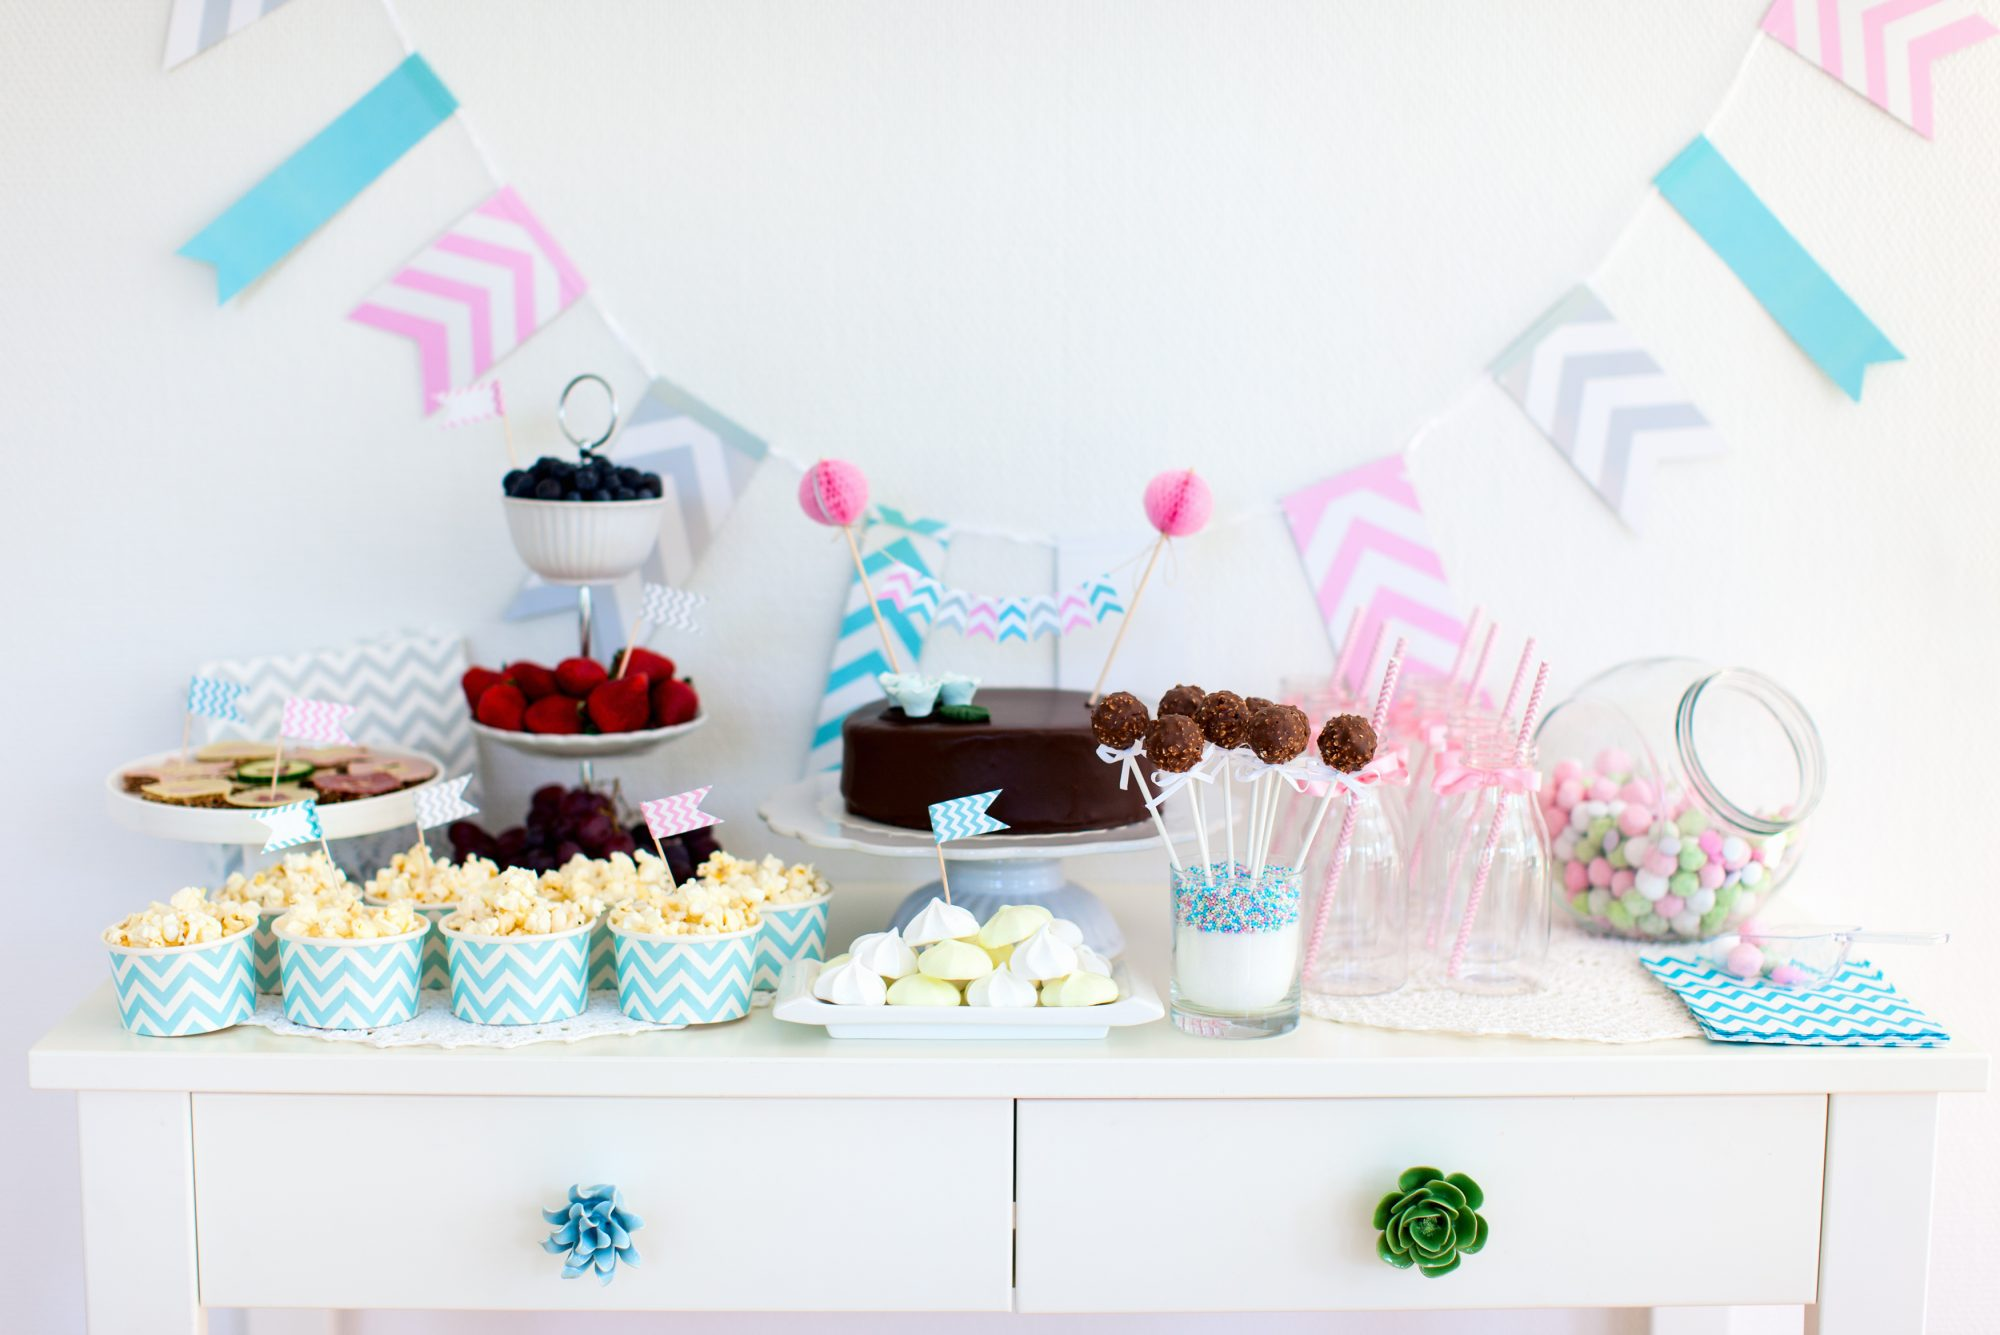 assortment of snacks on table for baby shower